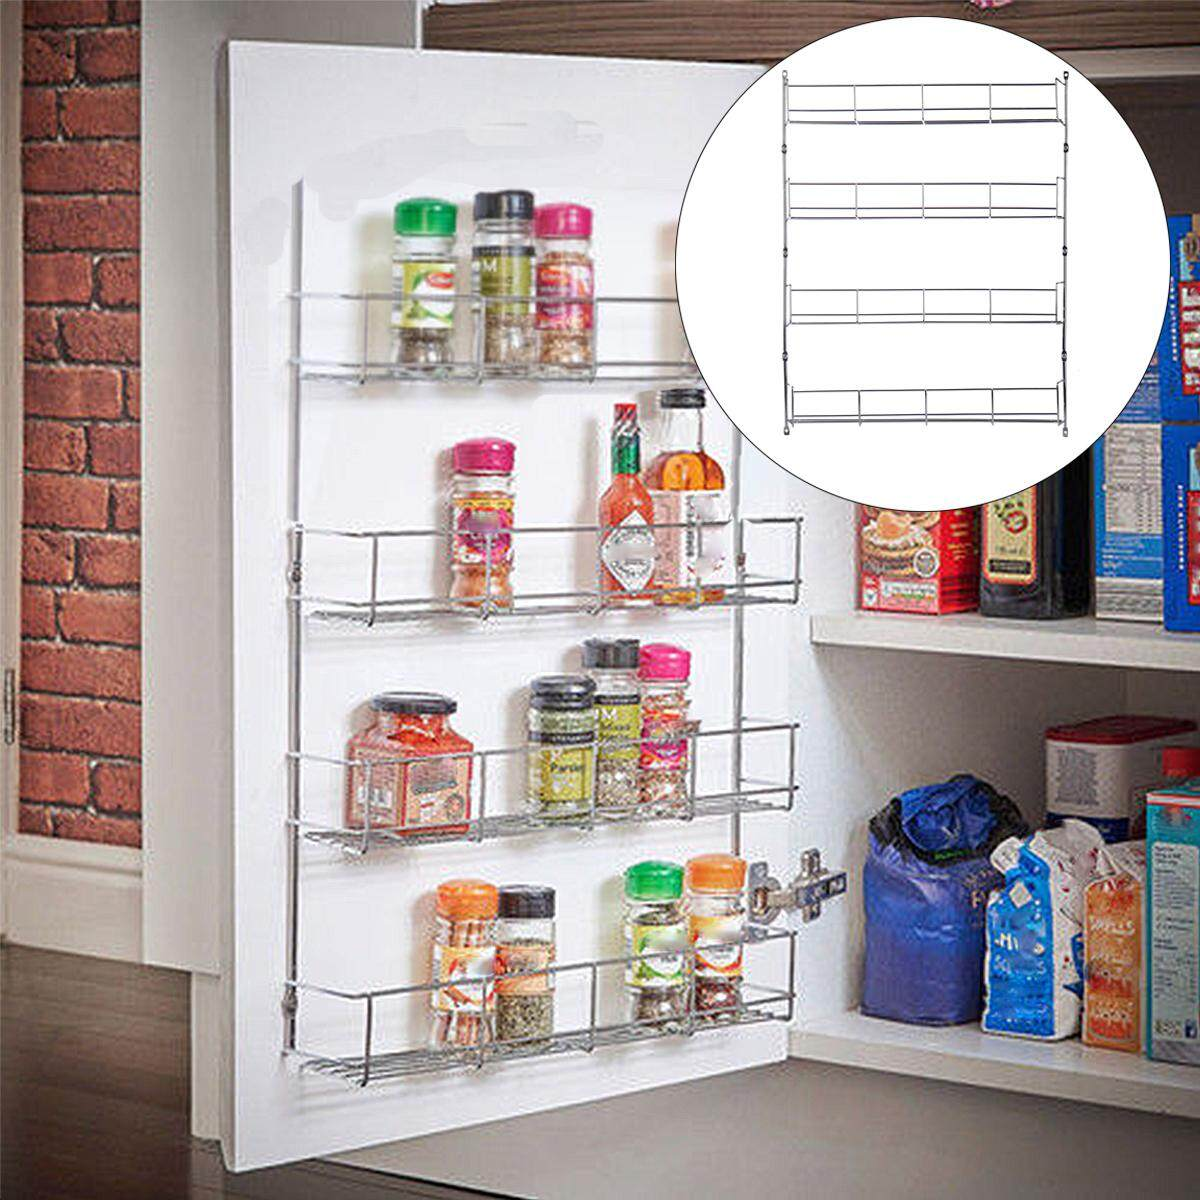 4 Tiers Kitchen E Rack Cabinet Organizer Wall Mount Storage Shelf Pantry Intl By Elec